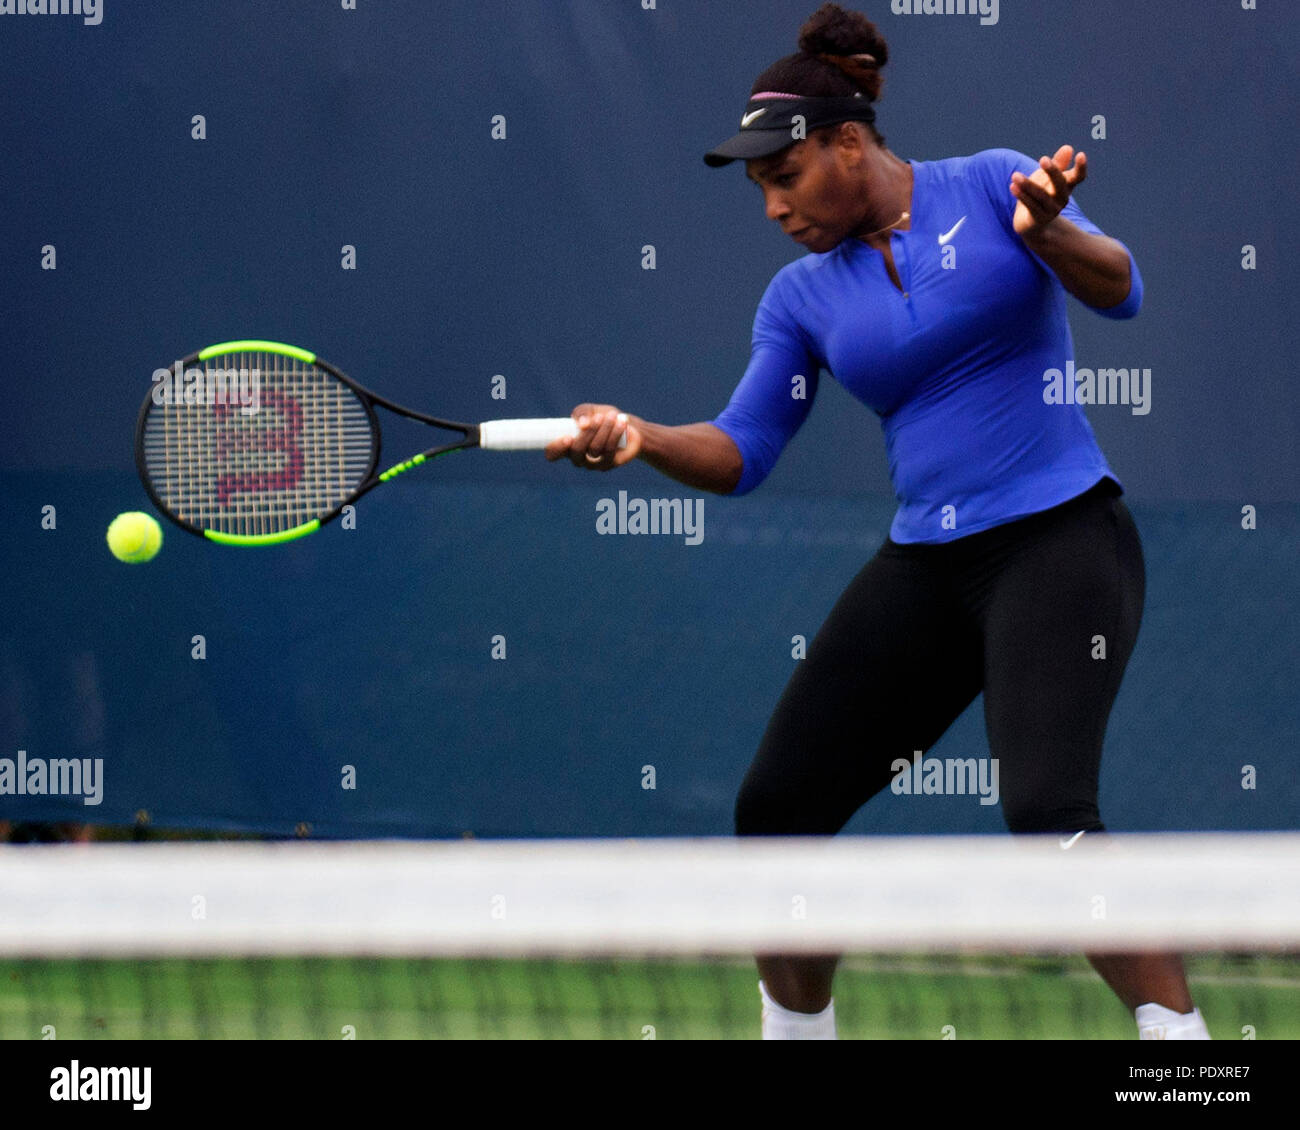 Ohio, USA, August 11, 2018: Serena Williams during practice at the Western Southern Open in Mason, Ohio USA. Brent Clark/Alamy Live News Stock Photo